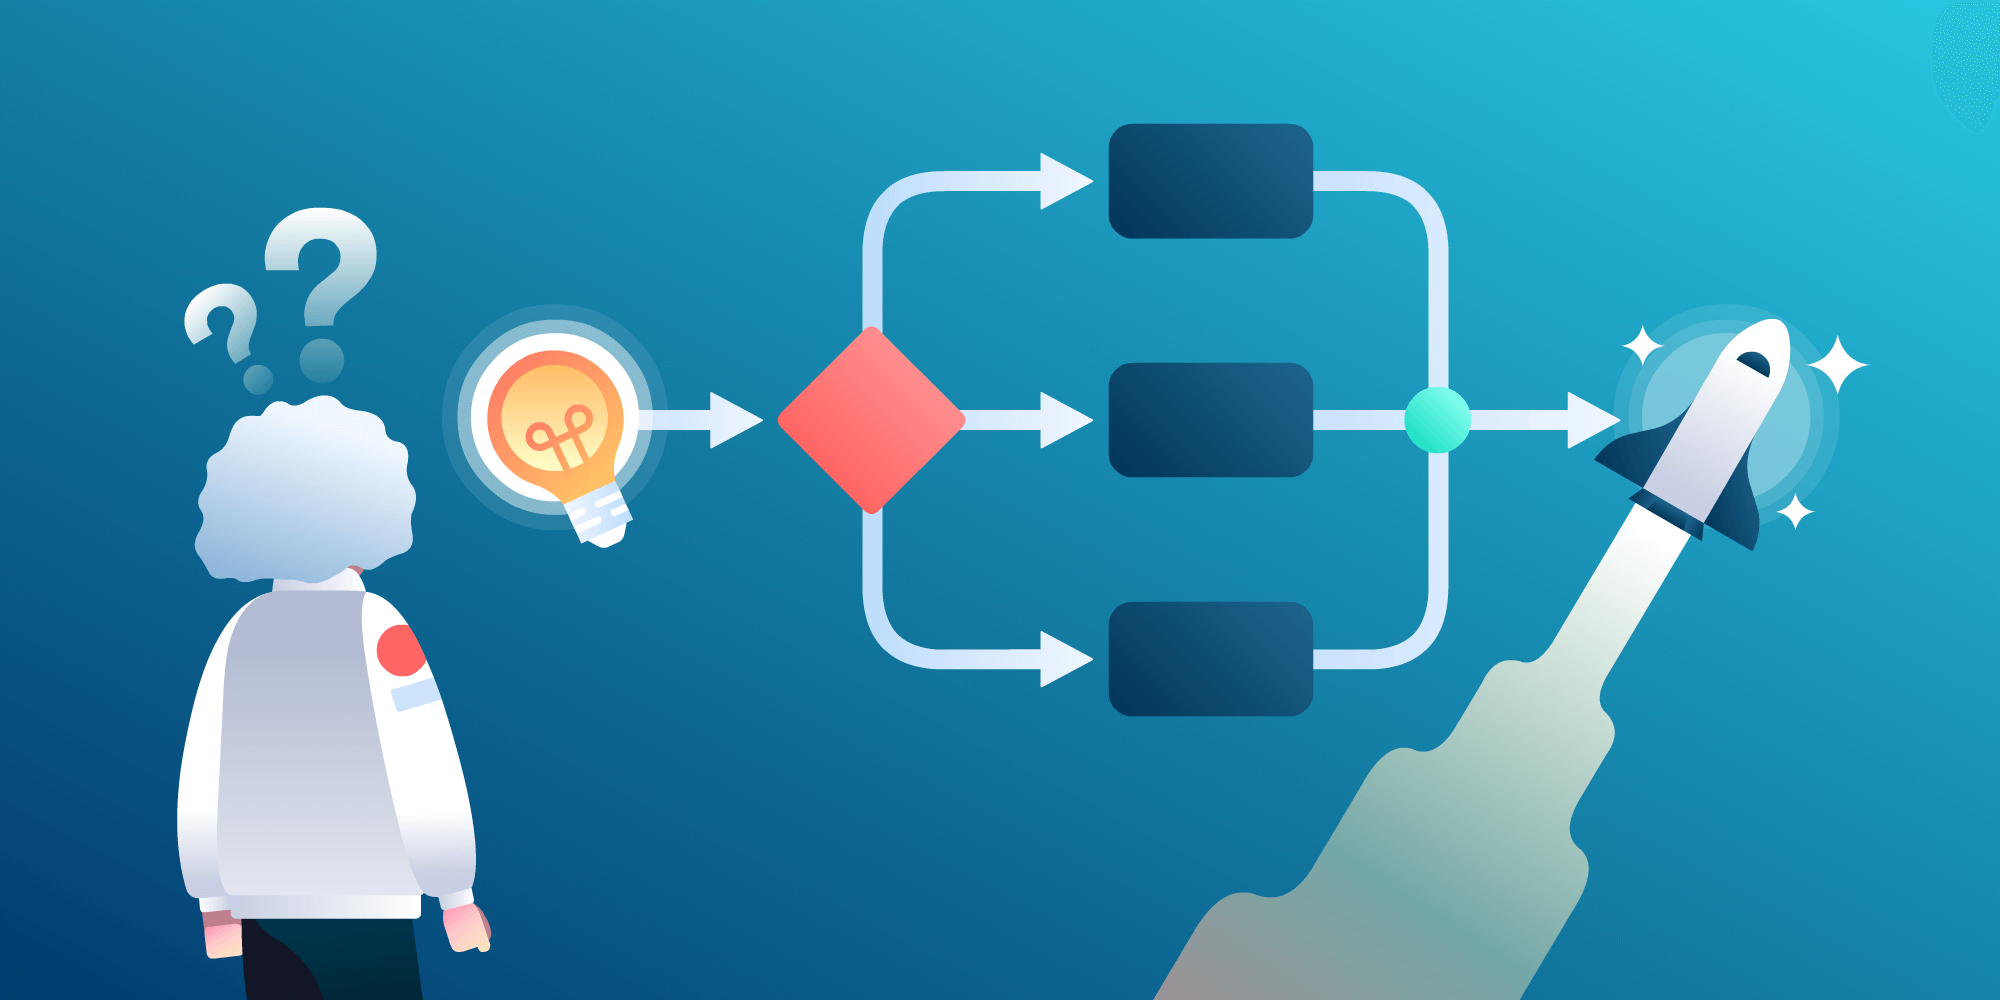 What_is_a_workflow?